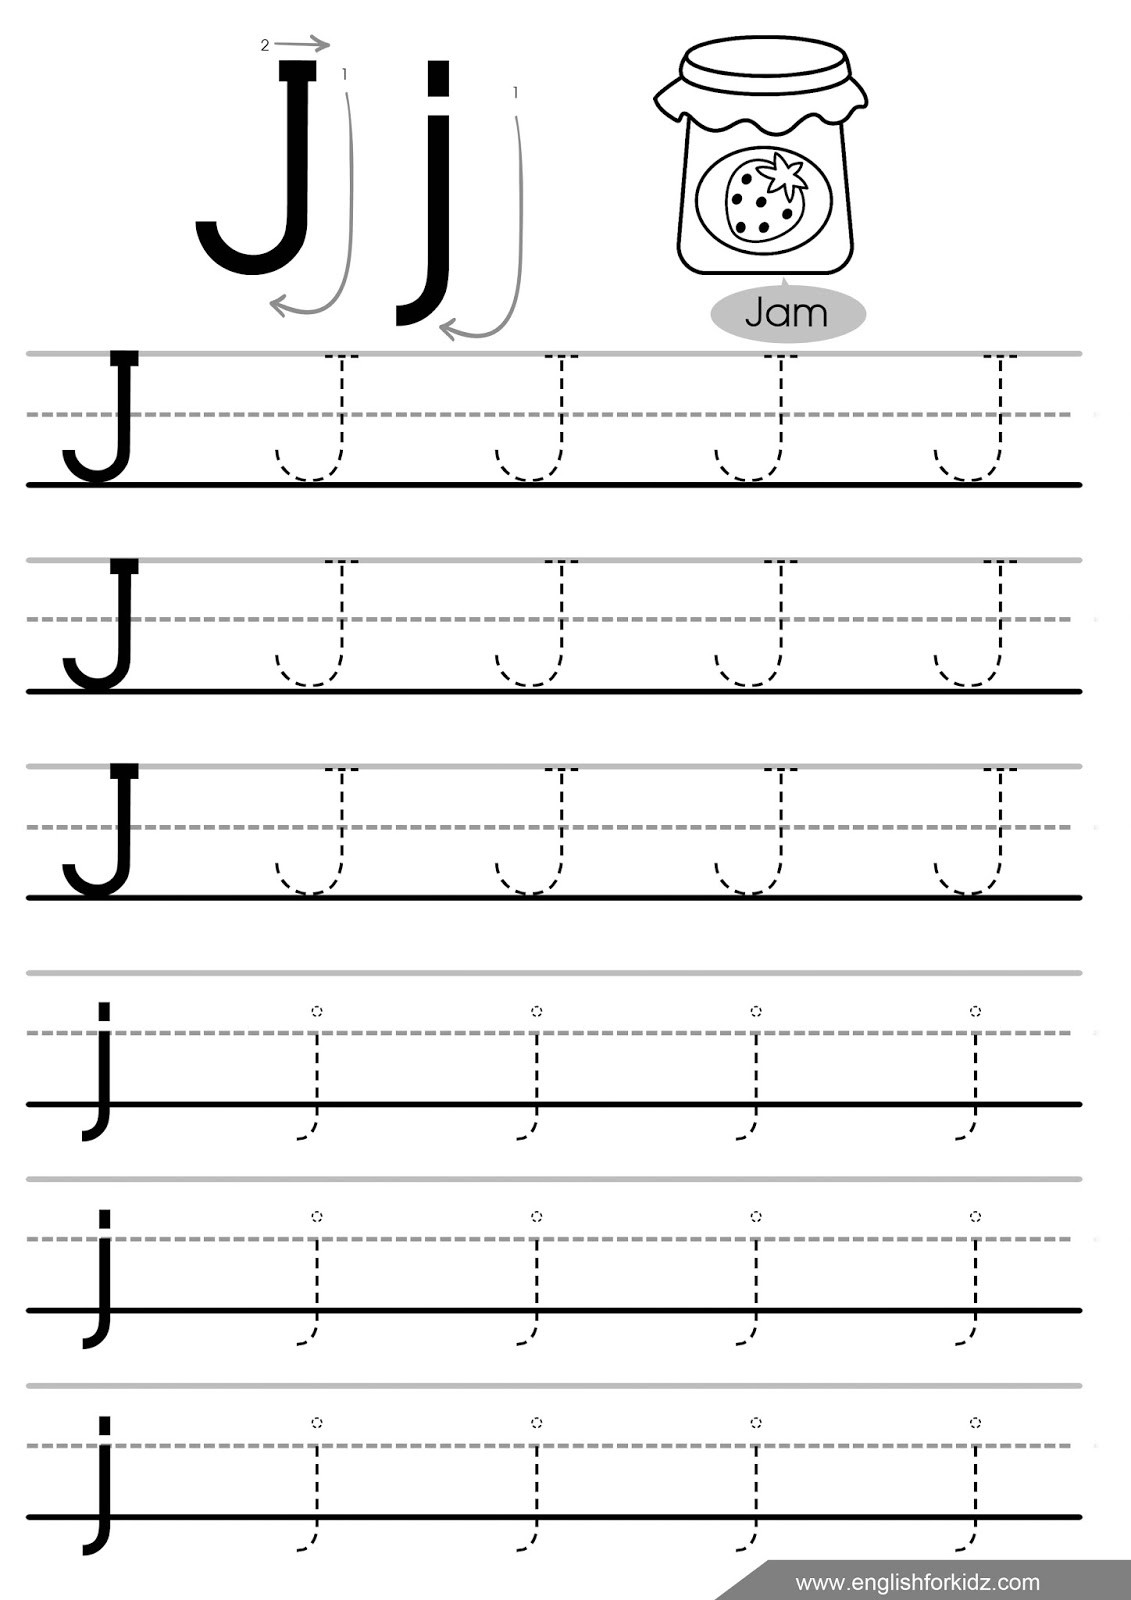 Tracing Lowercase Letters Printable Worksheets Letter Tracing Worksheets Letters A J